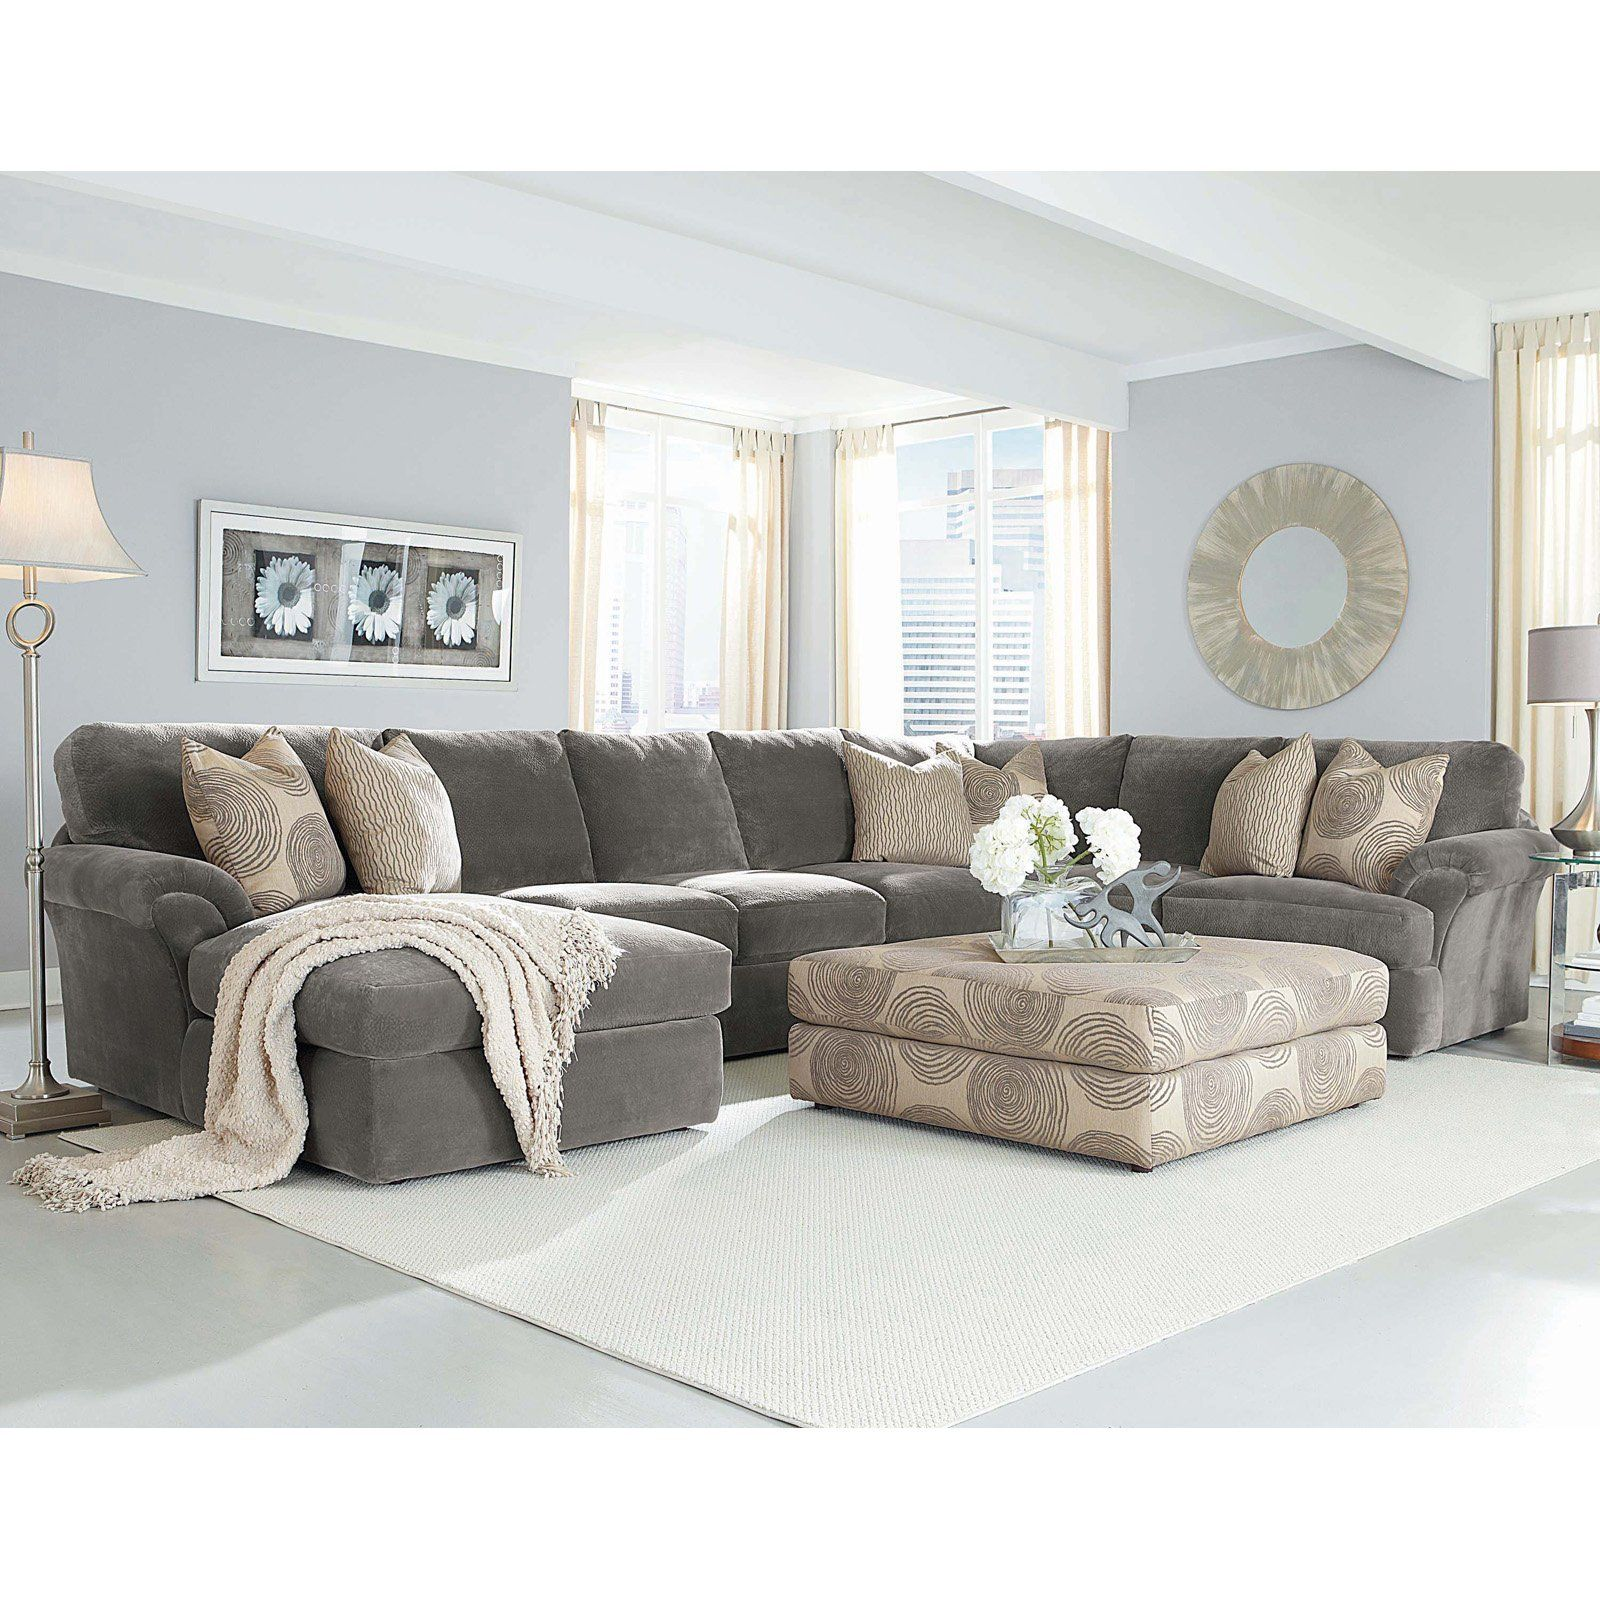 Have to have it Chelsea Home Bradley 3 Piece Sectional Sofa